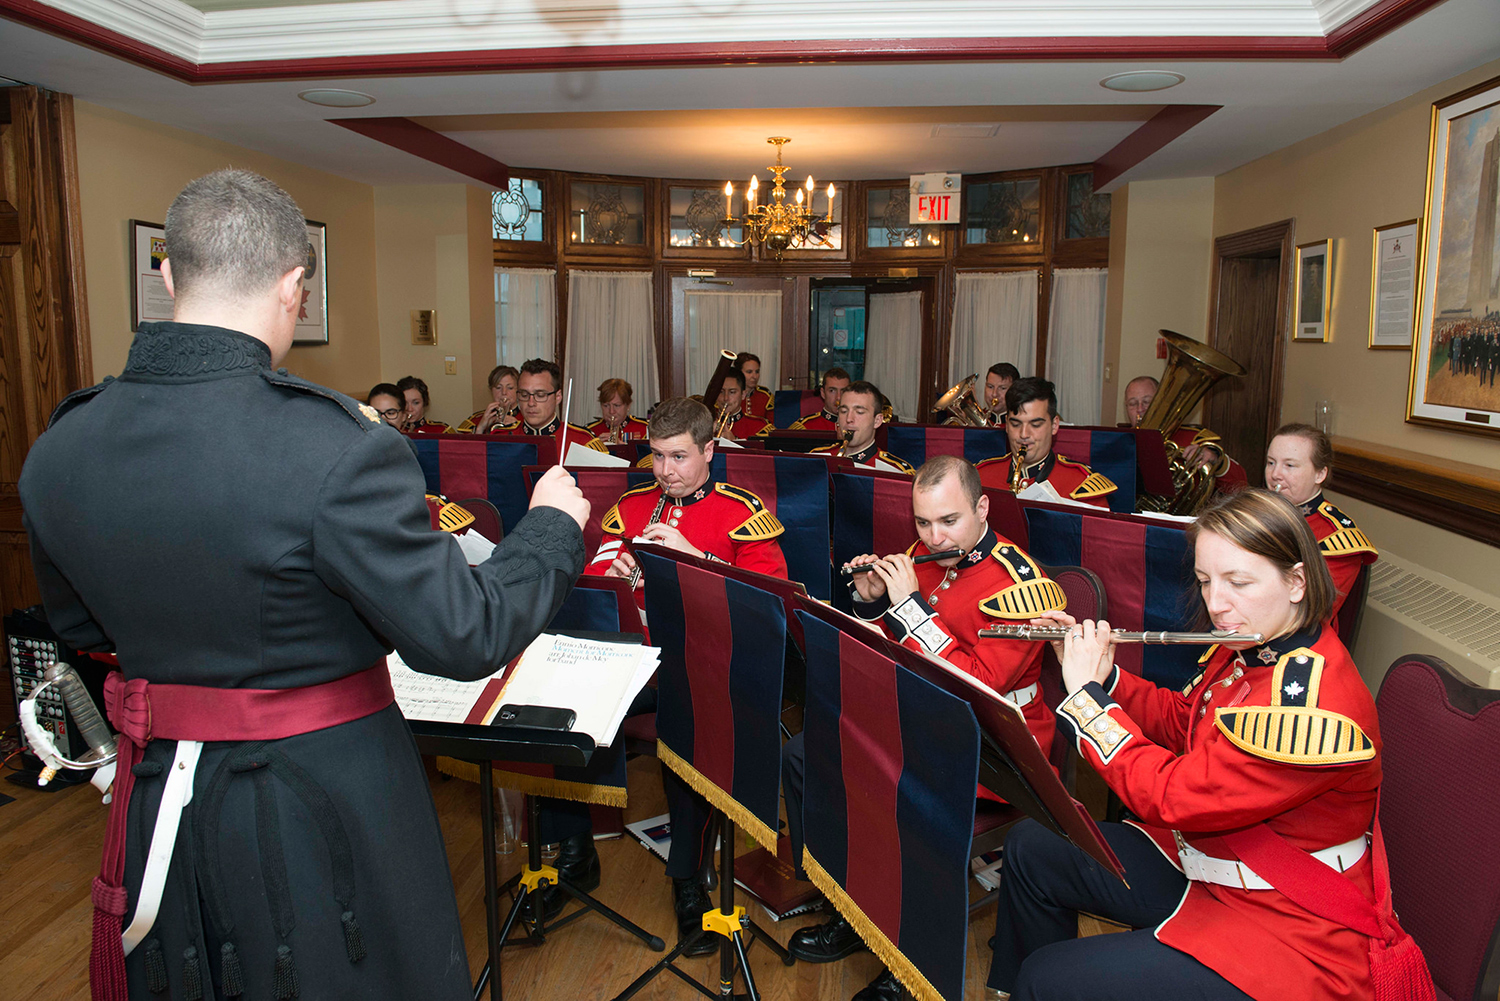 The Regimental Band of the Governor General's Foot Guards performs during Lieutenant-General Marquis Hainse's Commander Canadian Army Farewell Mess Dinner at the Army Officers' Mess, in Ottawa, Ontario on June 10, 2016. Photo by: MCpl Kurt Visser, Directorate of Army Public Affairs. ©2016 DND/MDN Canada.